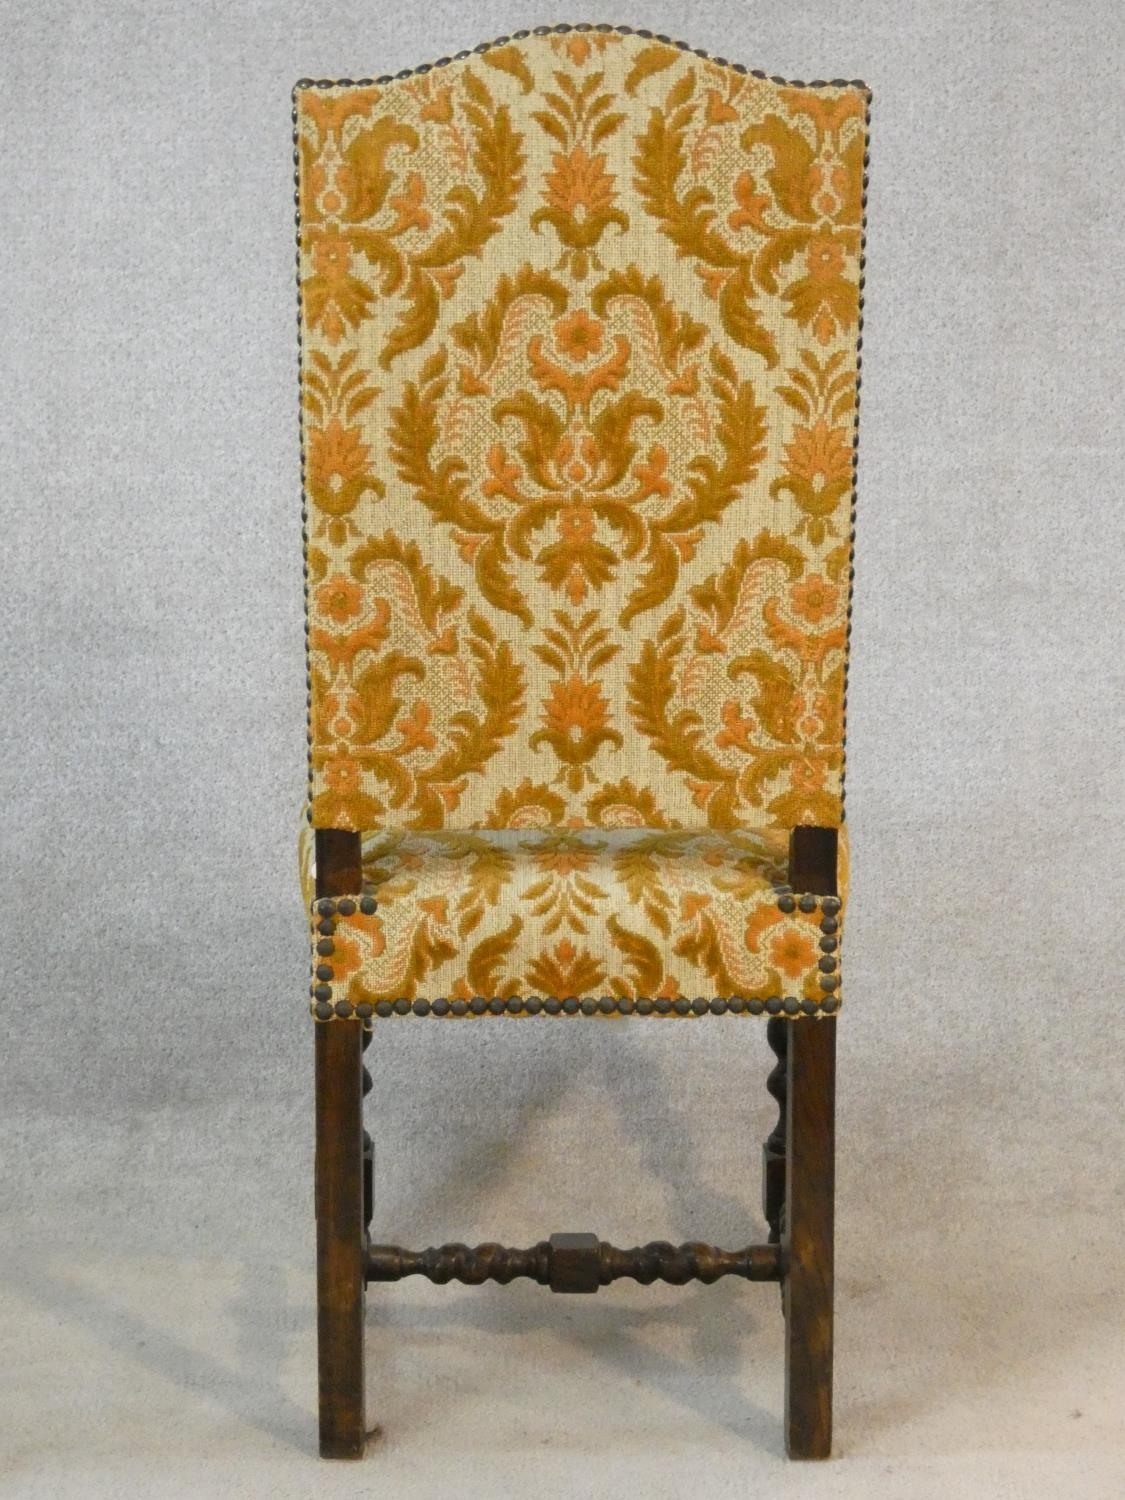 A set of six Jacobean style oak framed high back dining chairs in gold cut floral upholstery on - Image 13 of 14